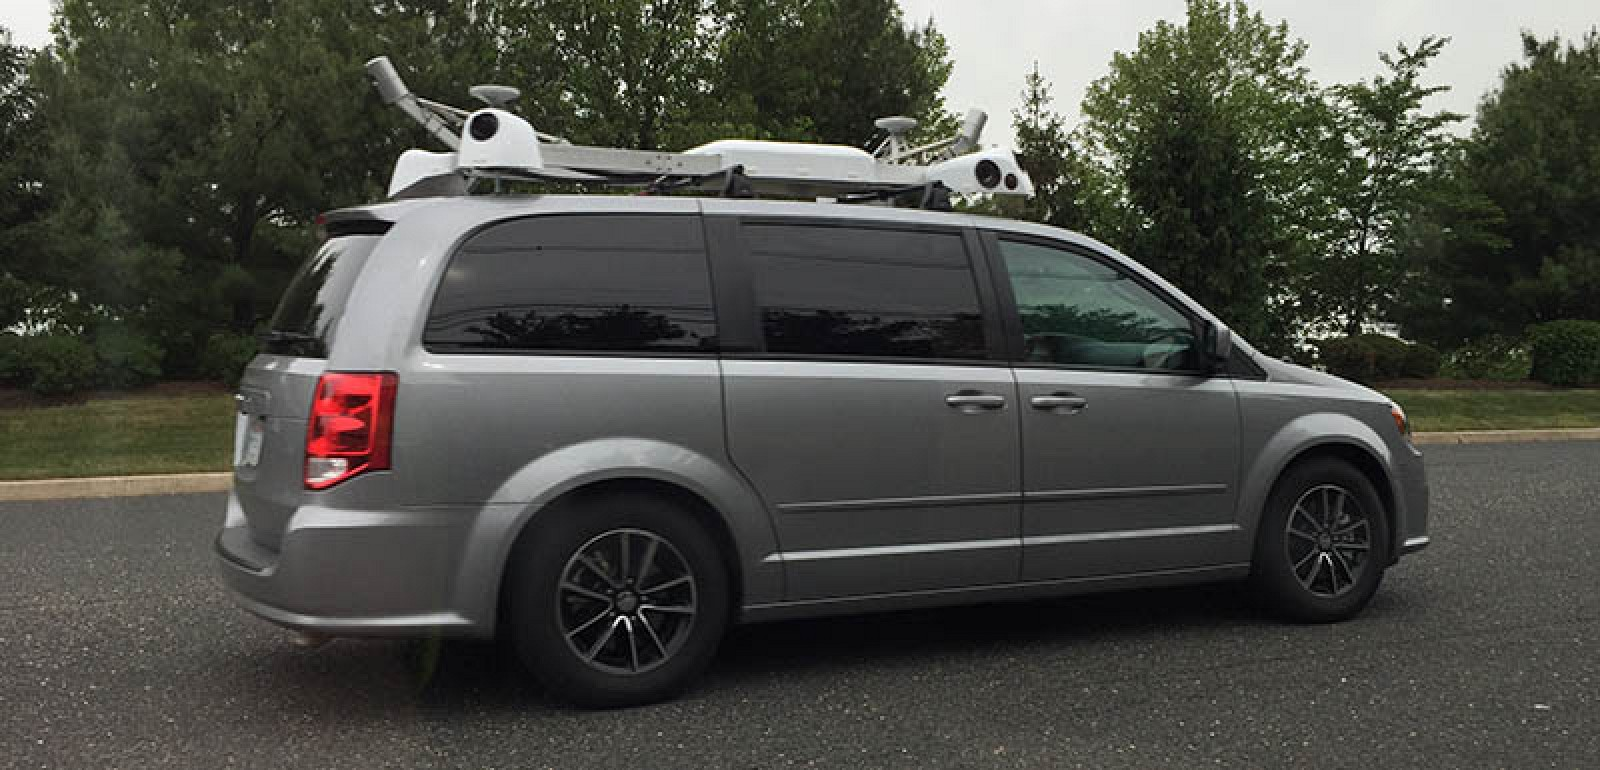 Apple Maps Vehicles Collecting 'Street View' Data in US ...